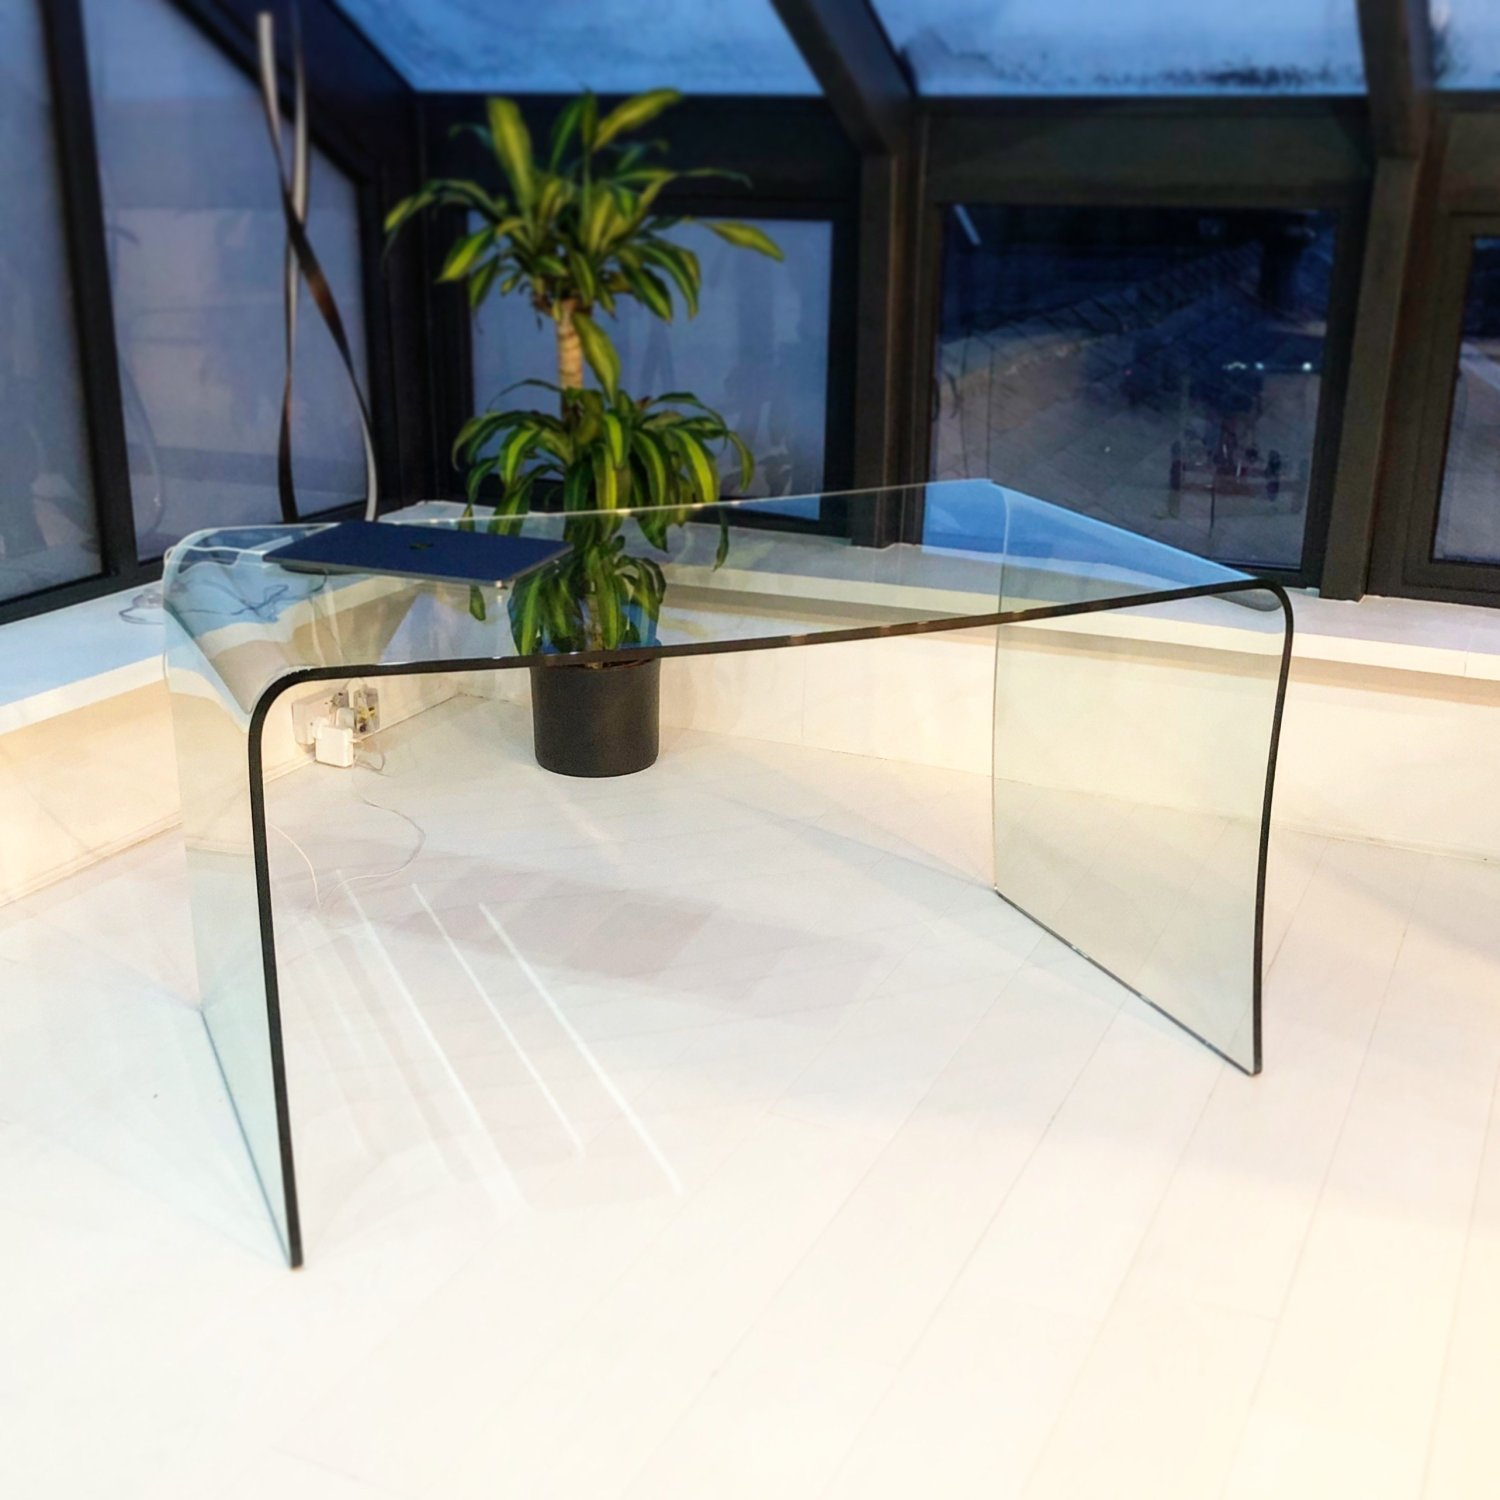 Curved glass desk